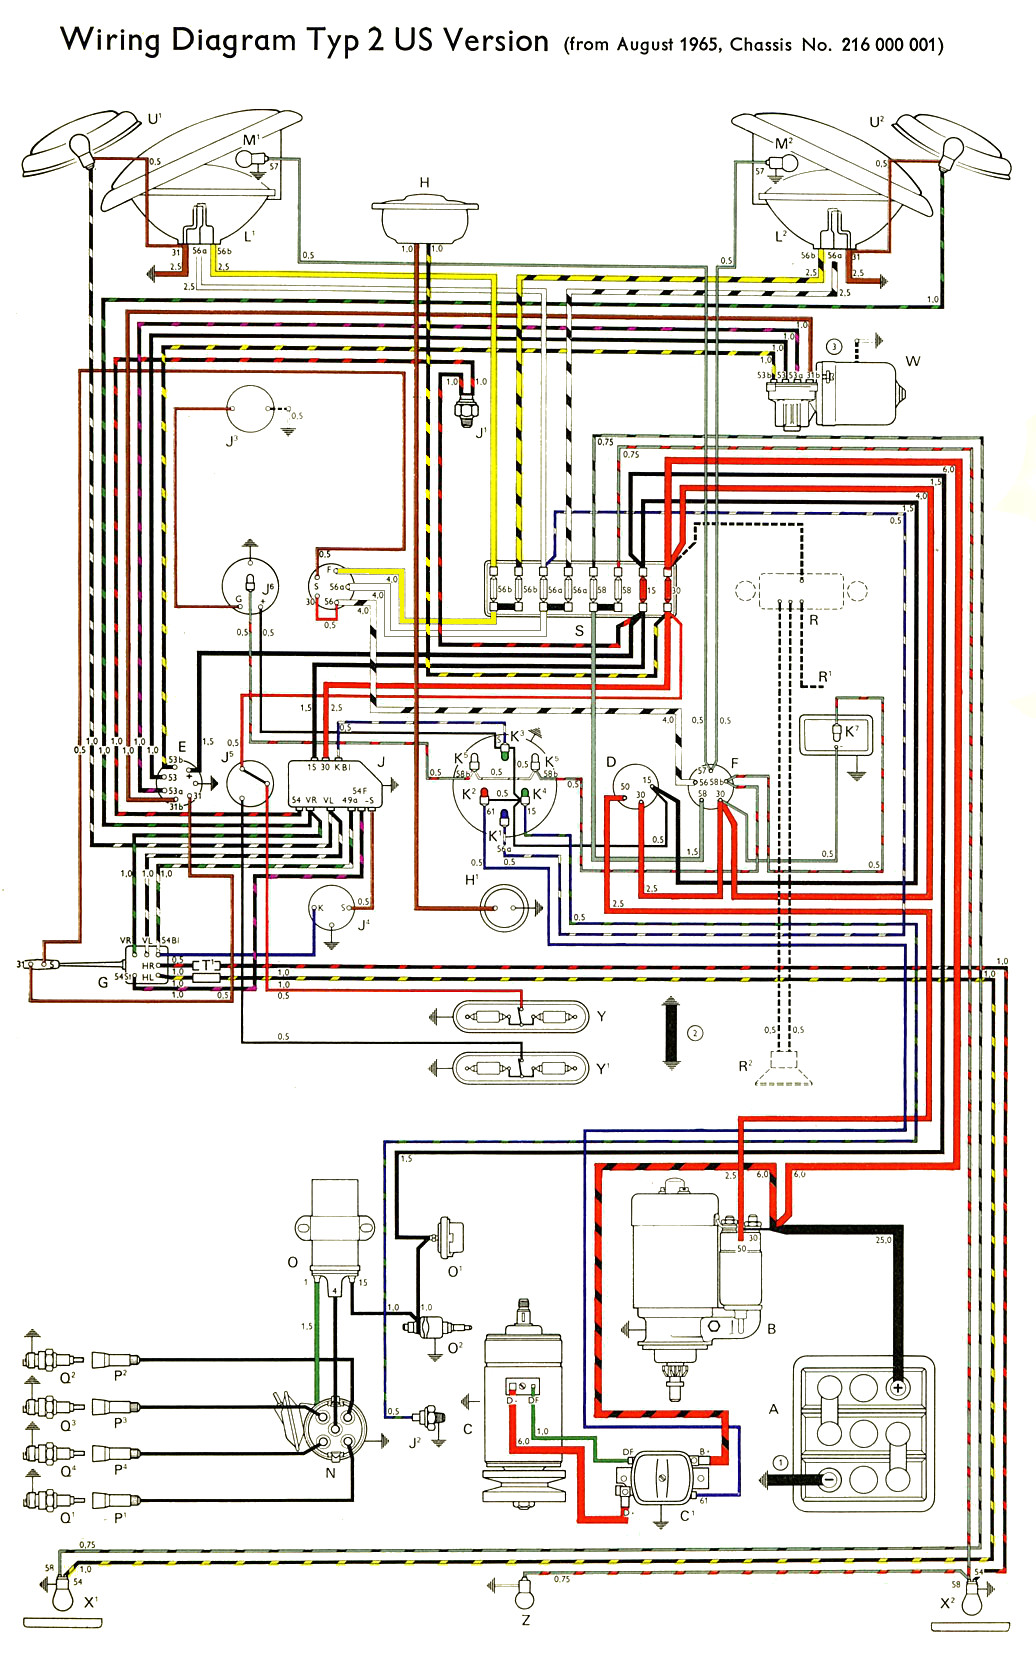 bus_66_USA thesamba com type 2 wiring diagrams  at eliteediting.co